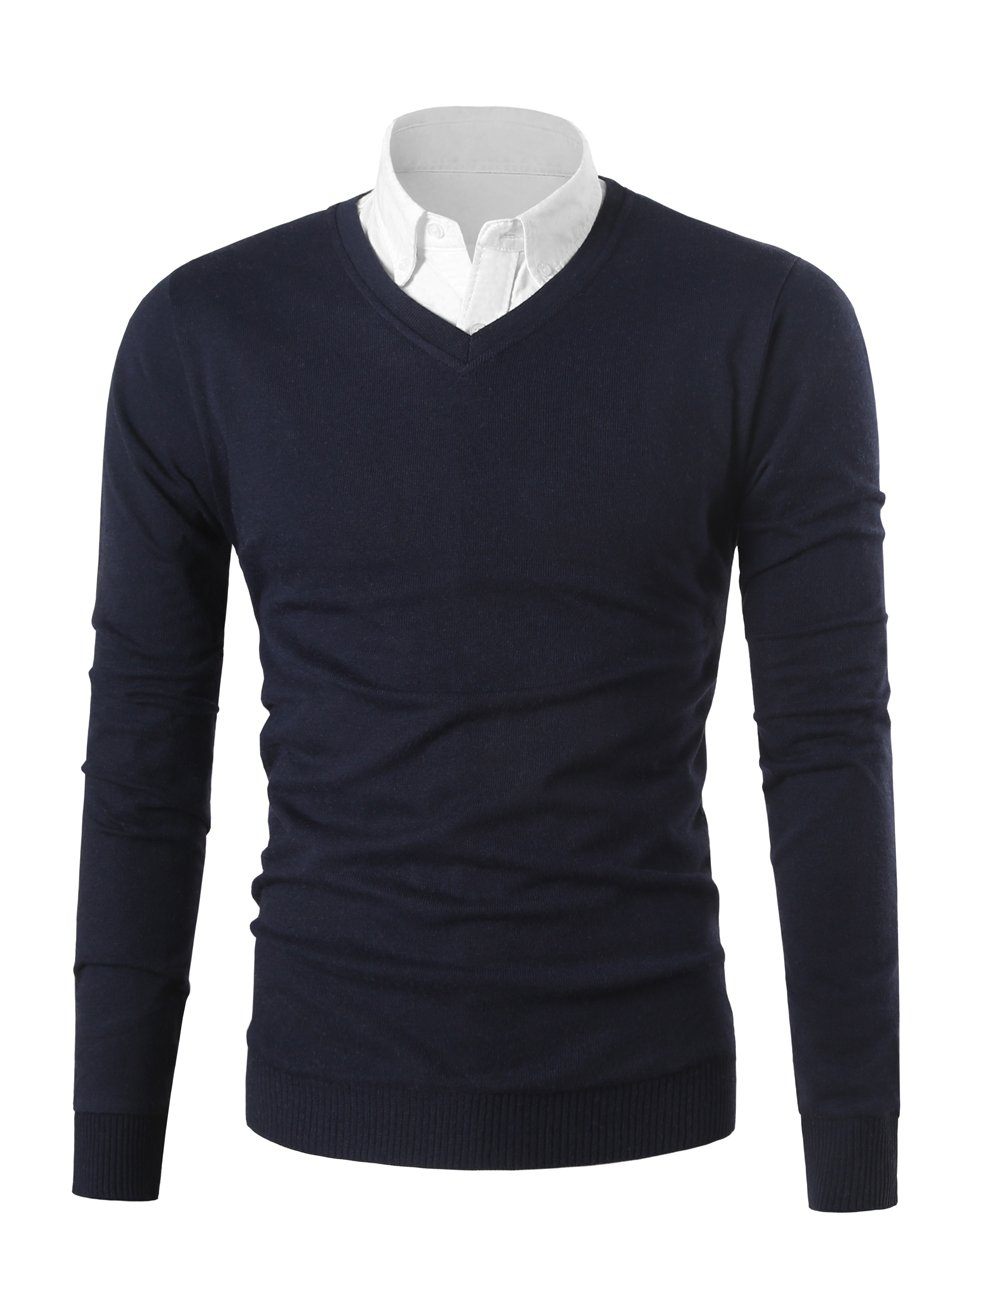 Mesahara Mens Casual Slim Fit Knit V-Neck Pullover Sweater (M, Navy Blue)